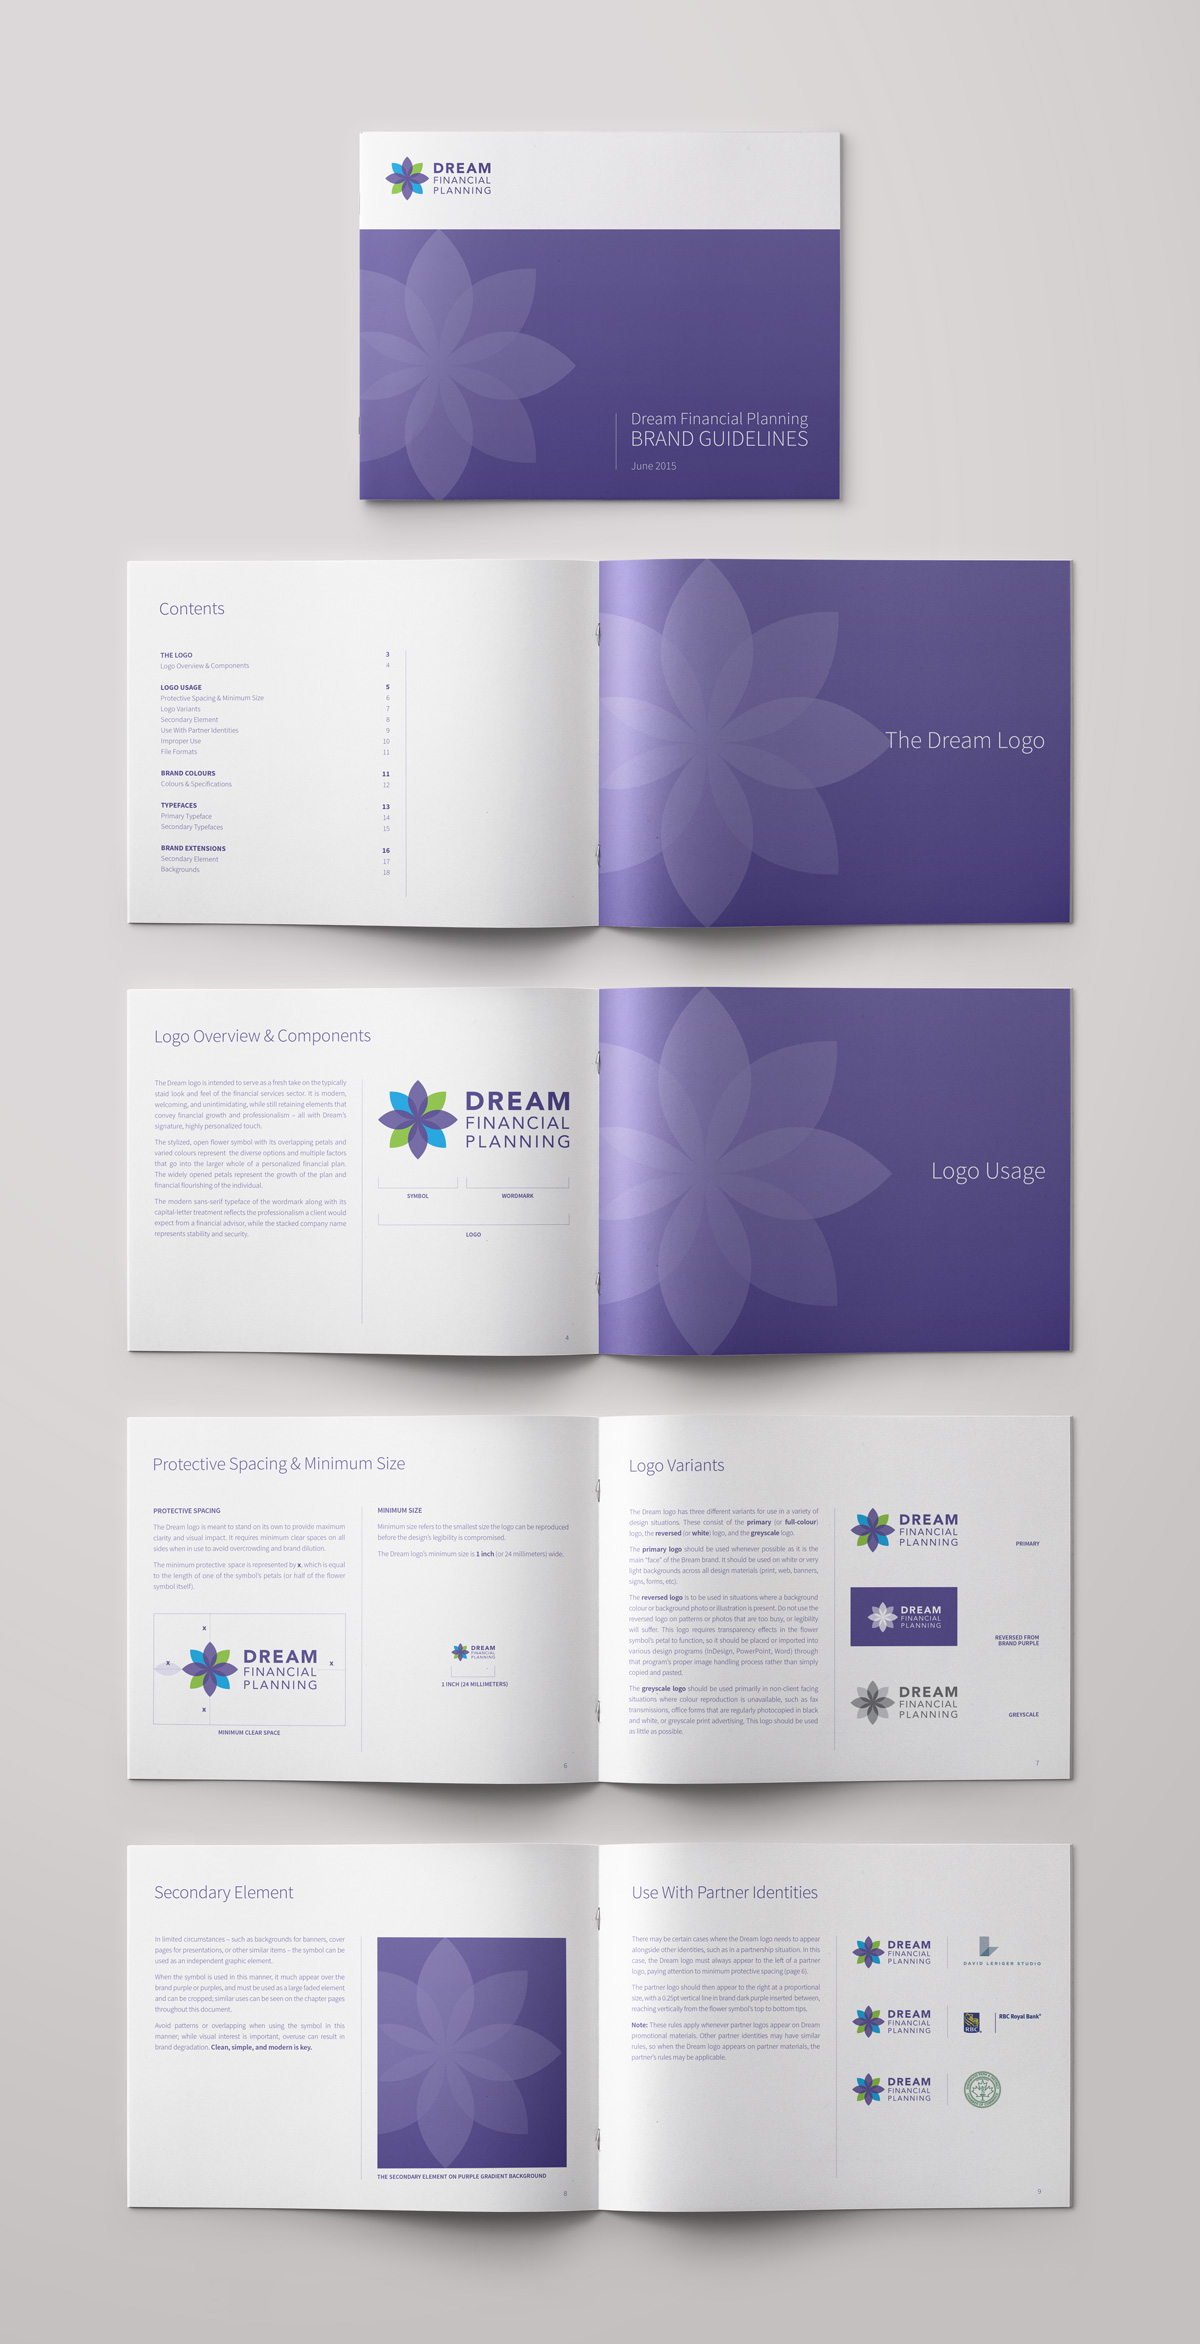 Dream Financial Planning – Visual Identity Guide Part 1